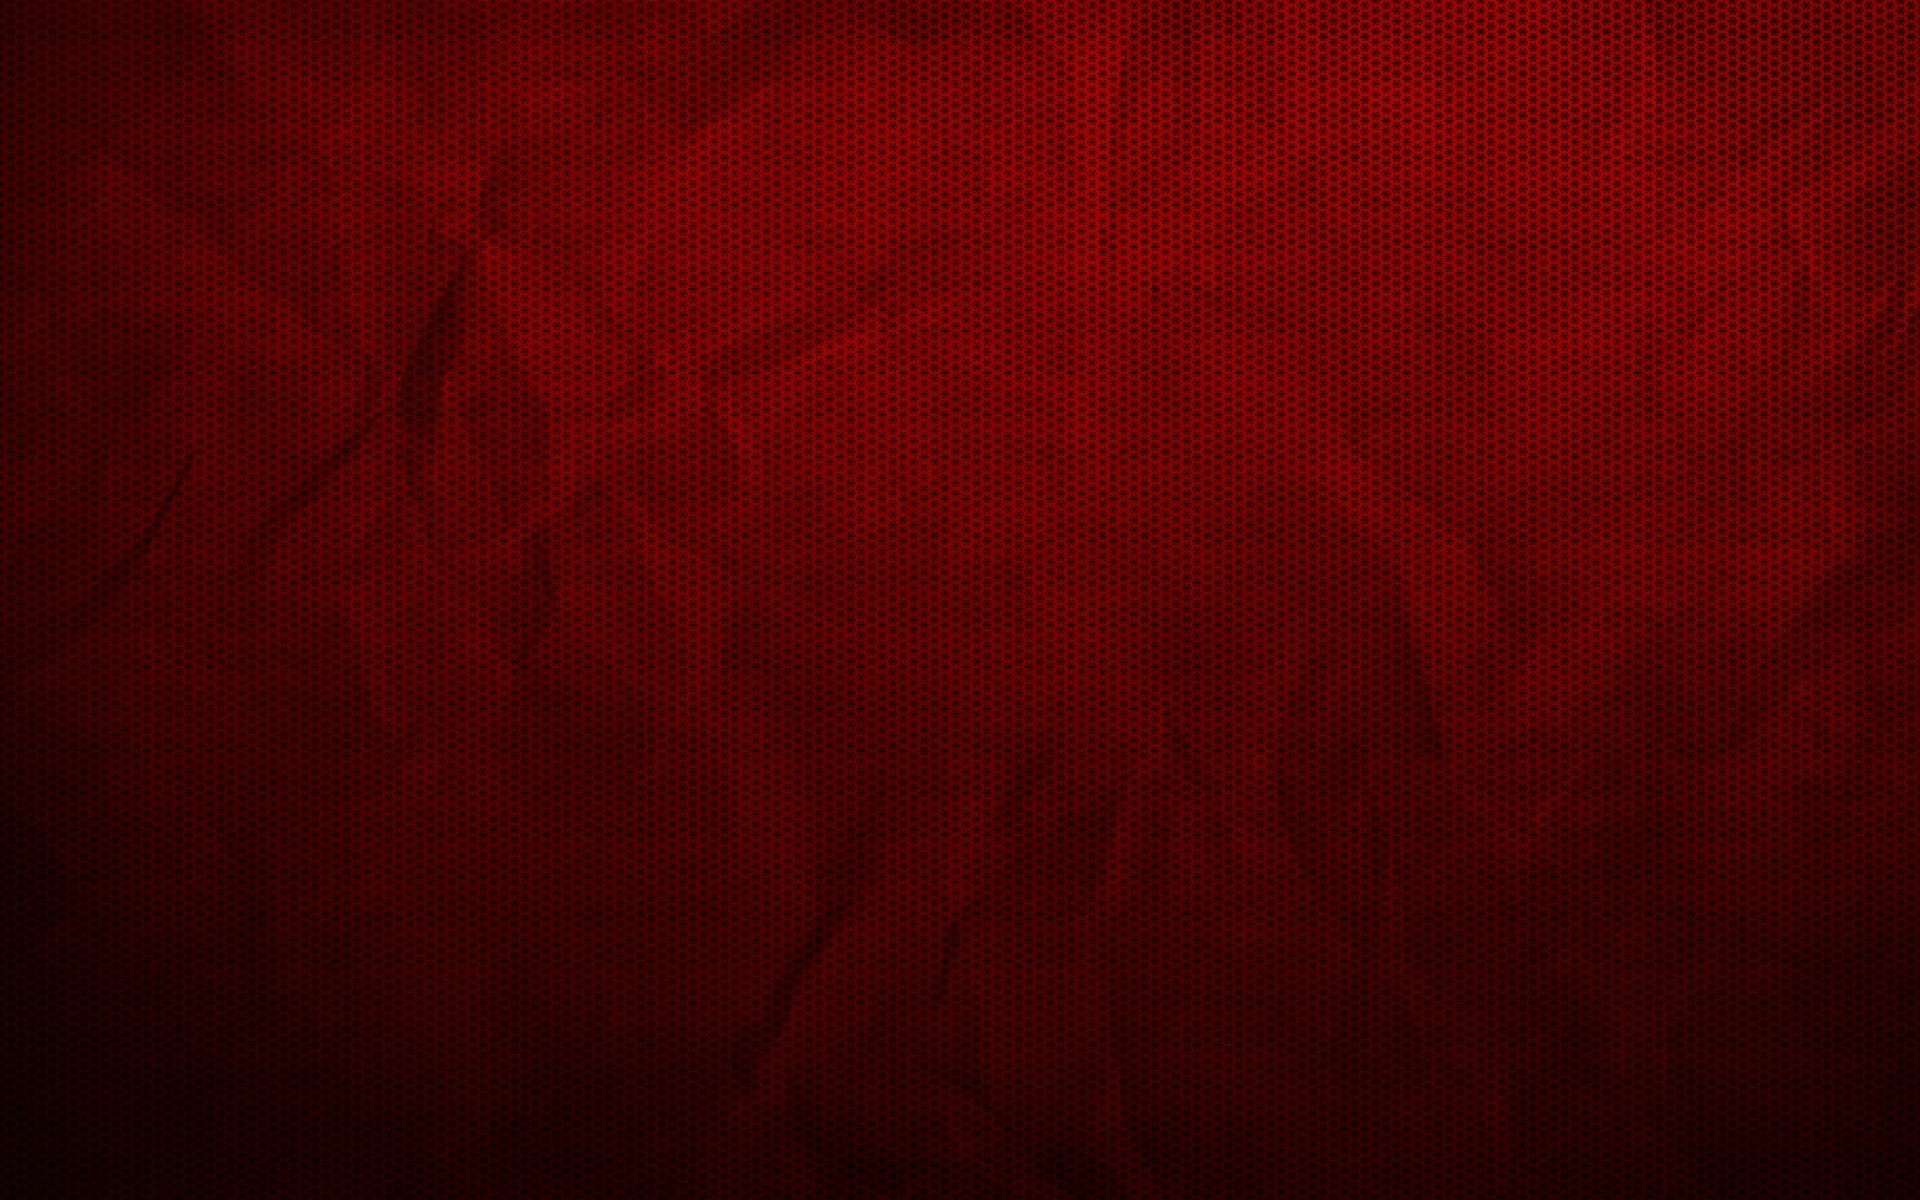 Dark Red Background Wallpaper (66+ images)